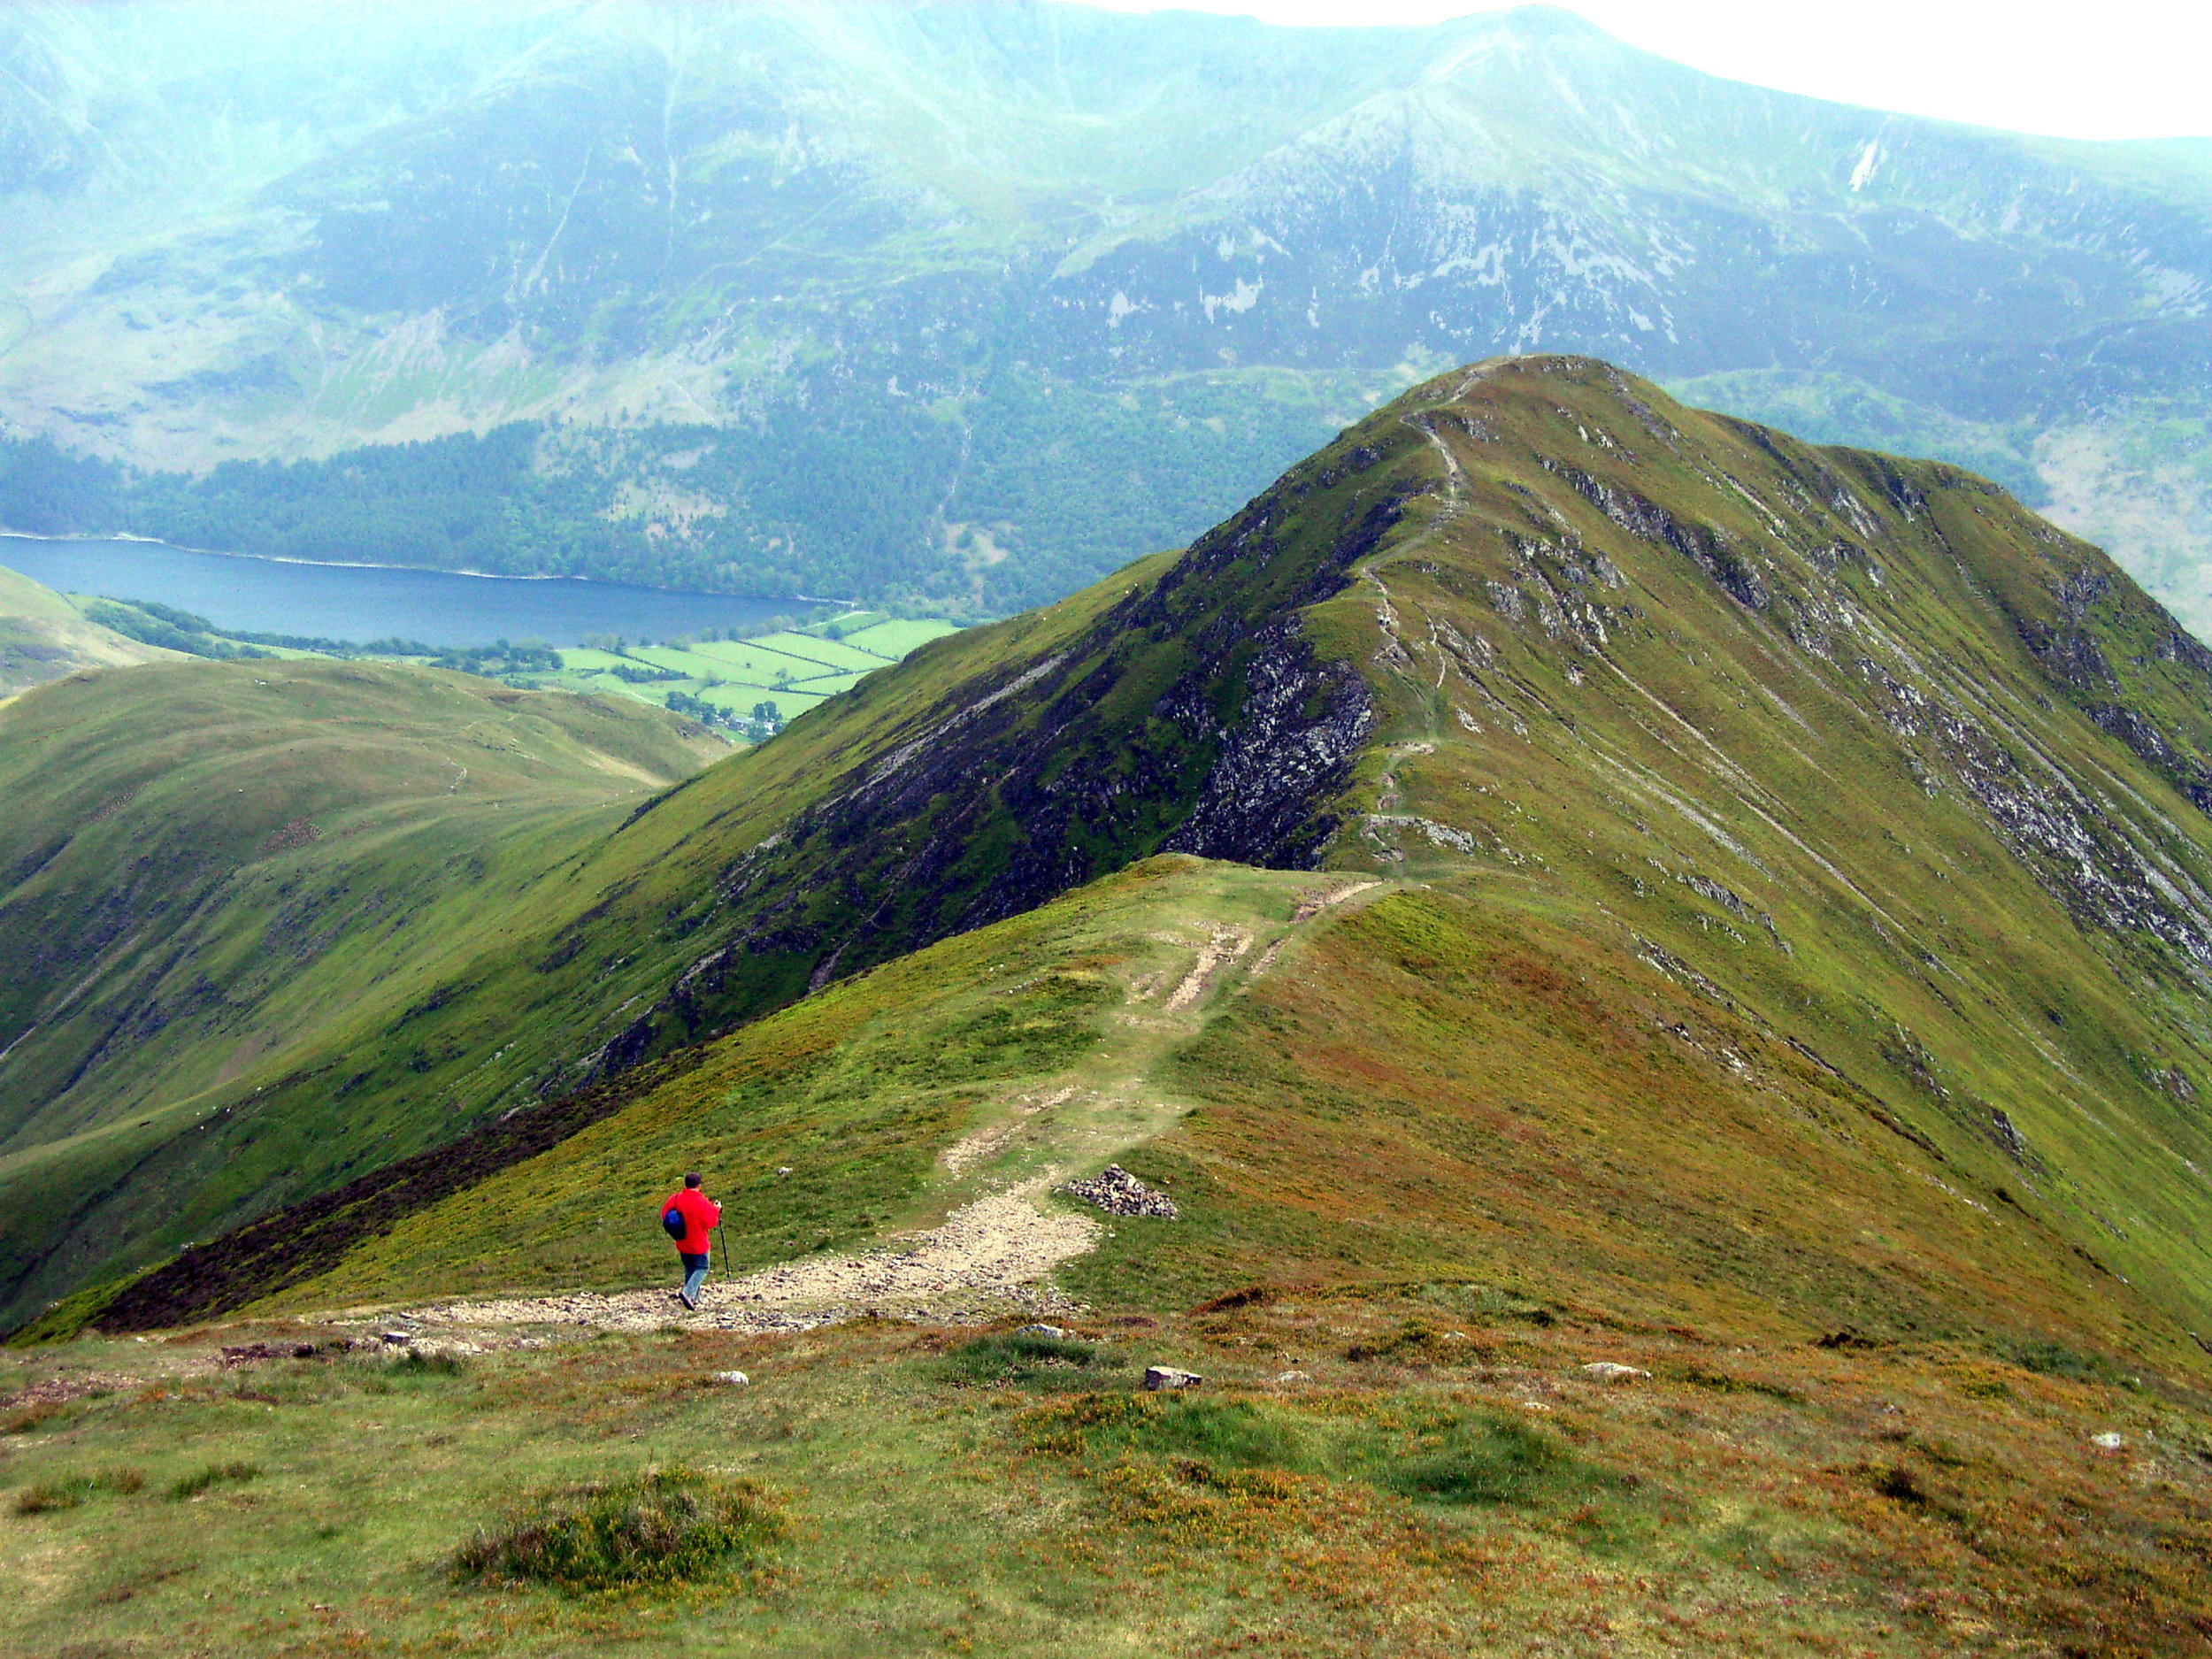 Great Lakeland Ridge Walks - Reach for the sky... A challenging hiking holiday aiming for the major peaks and high ridges of Lakeland and some of Britain's best views! Walking Grade: Grade 8